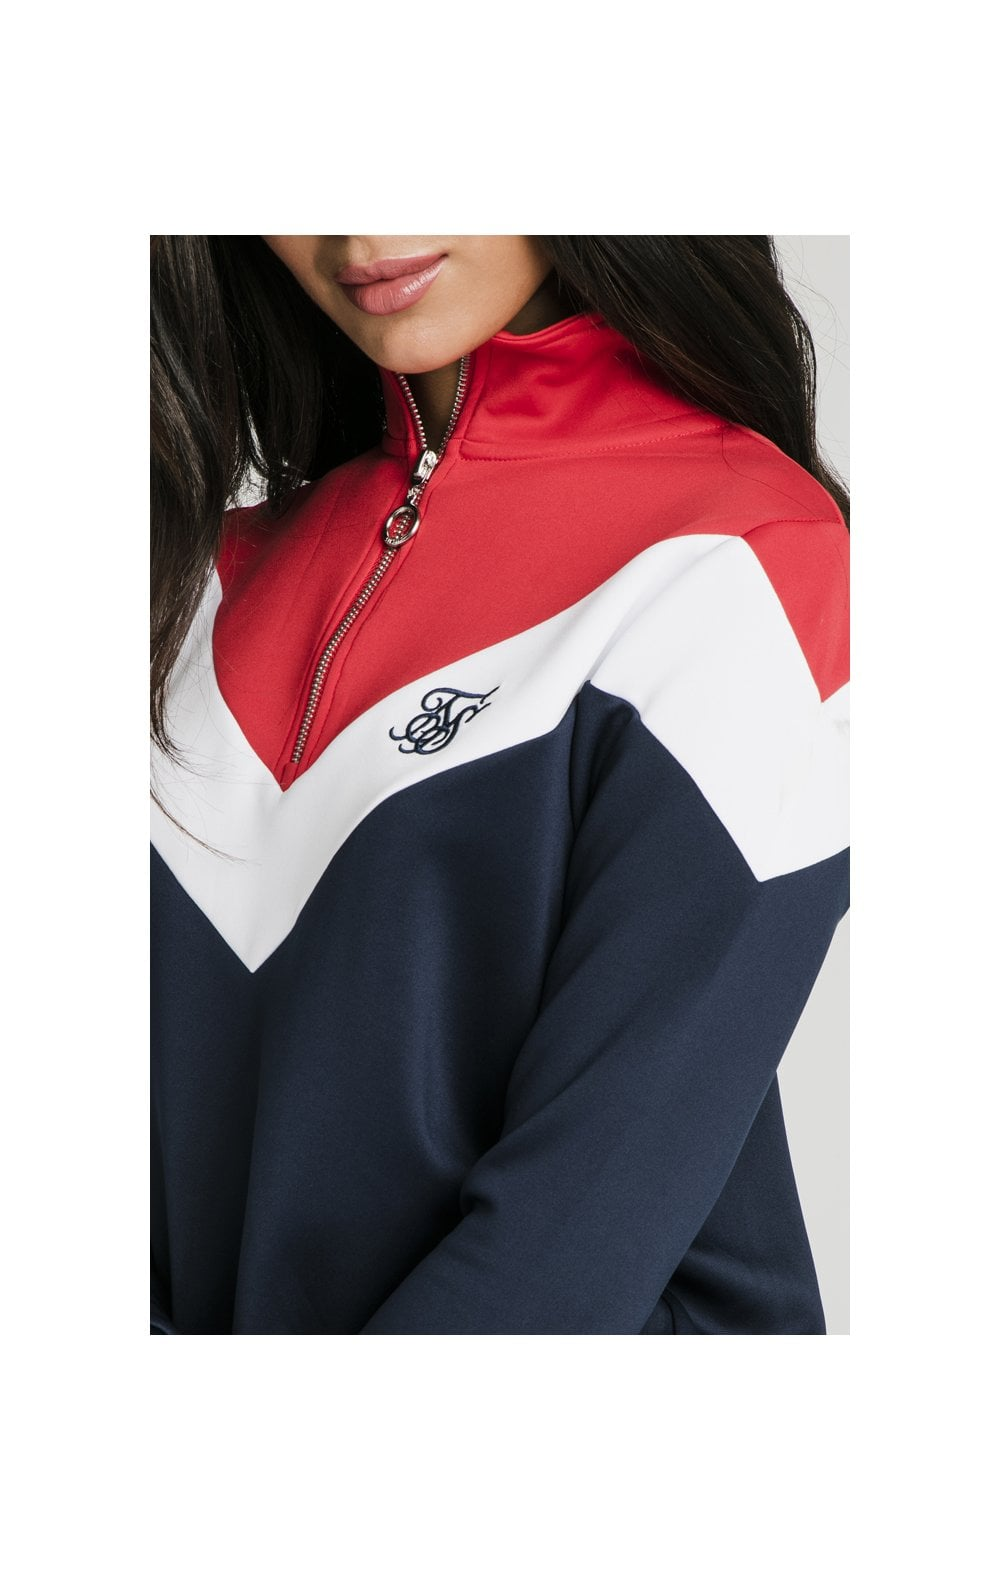 SikSilk Retro Sport Track Top - Navy, Red & White (1)